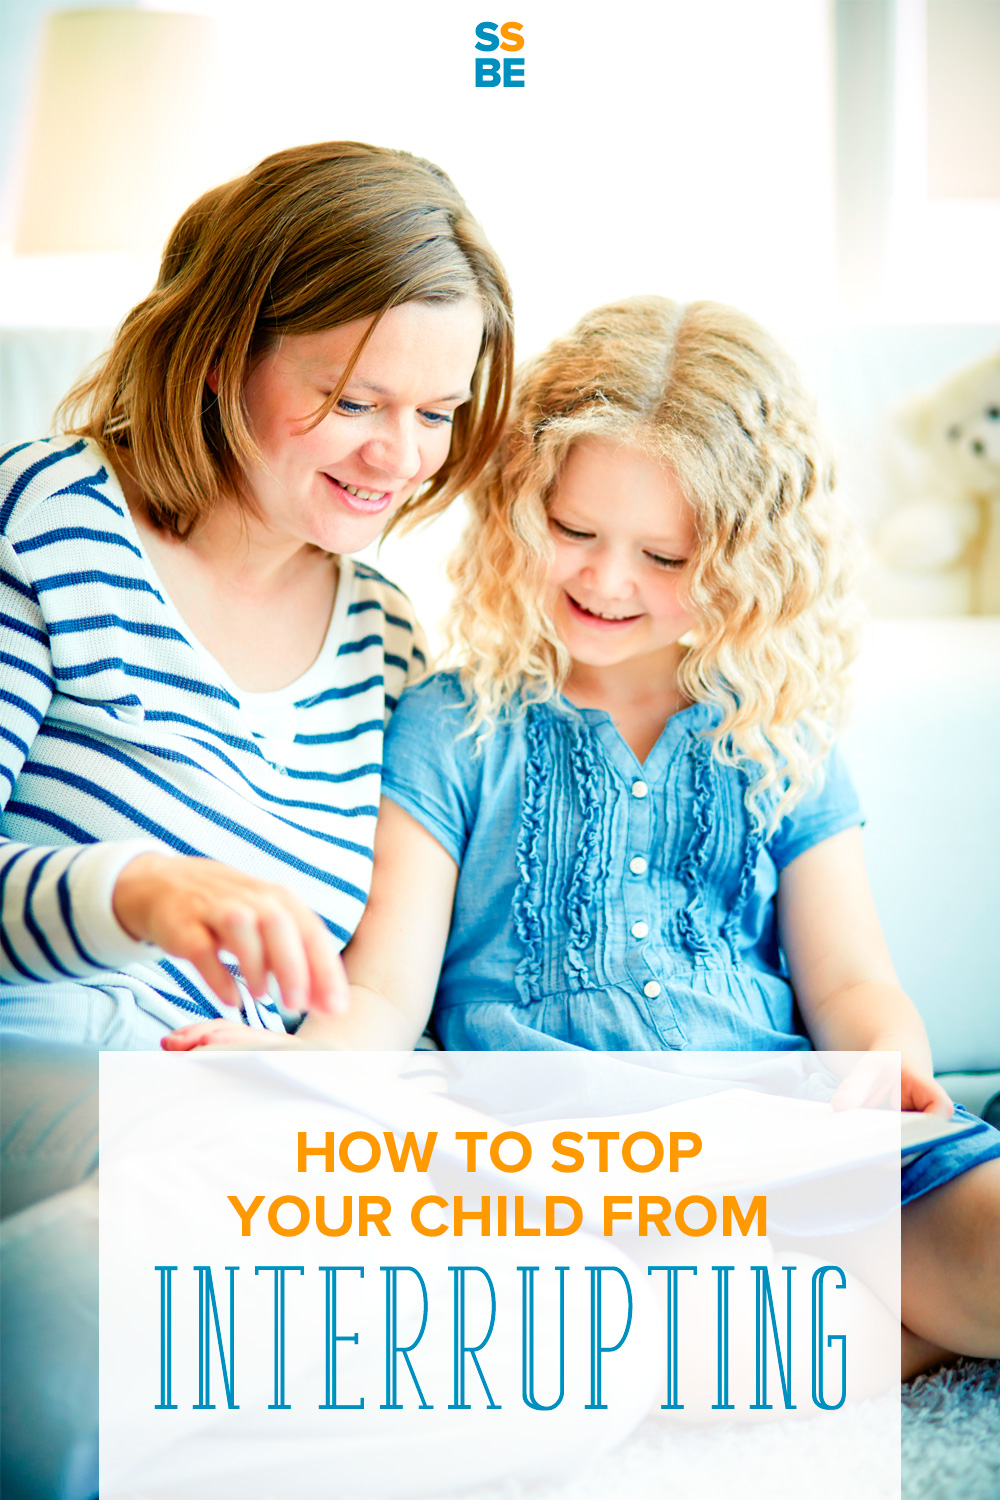 Does your child interrupt conversations, whether between adults or children? Learn how to stop your child from interrupting, all without a meltdown.